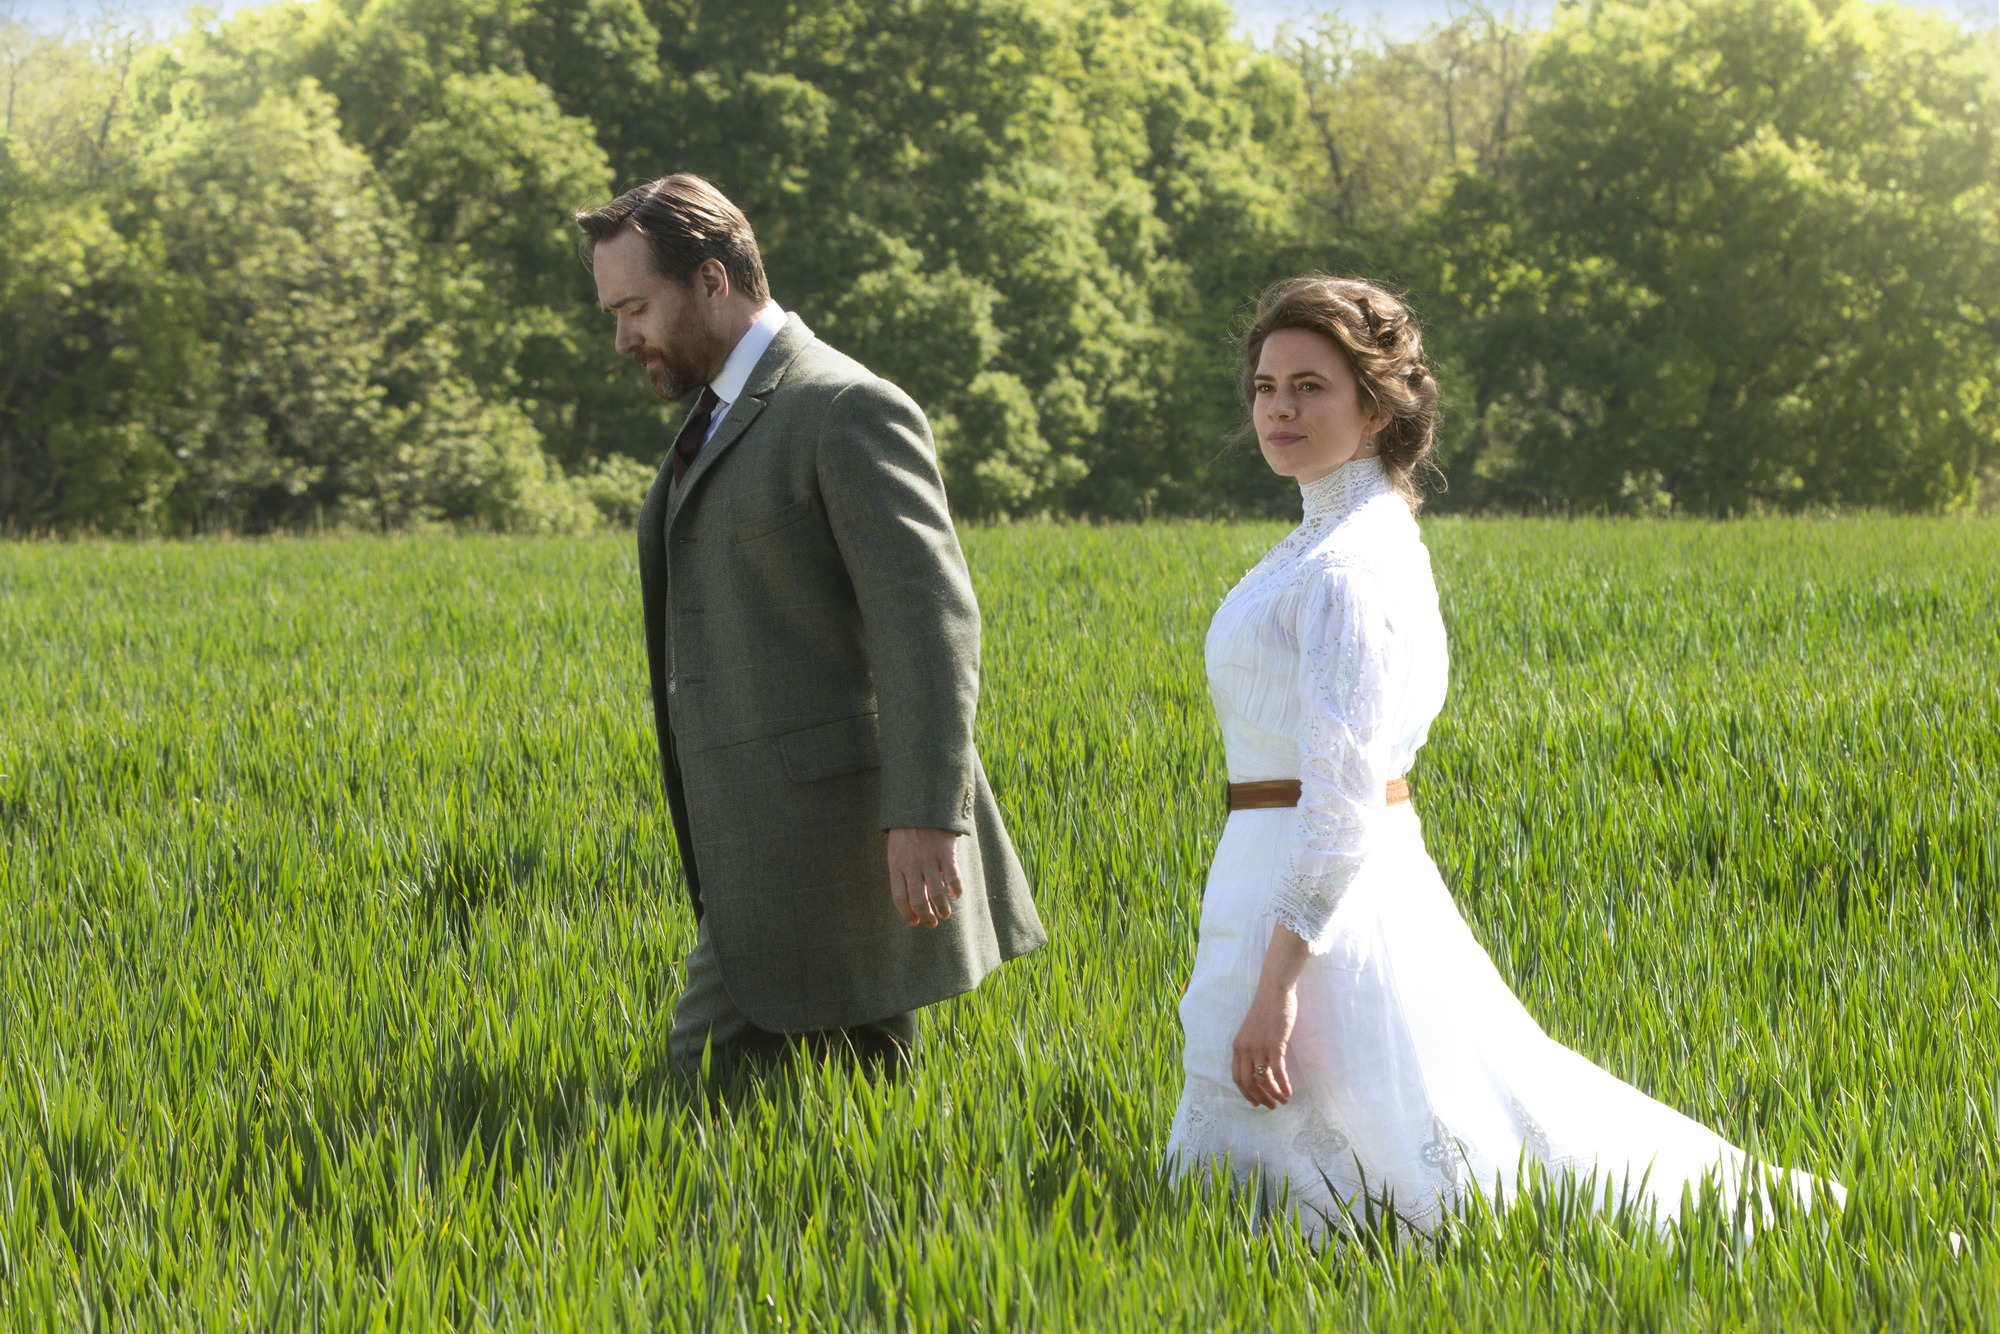 Margaret Schlegel (Hayley Atwell) and Henry Wilcox (Matthew Macfadyen) in Howards End (BBC, TL)